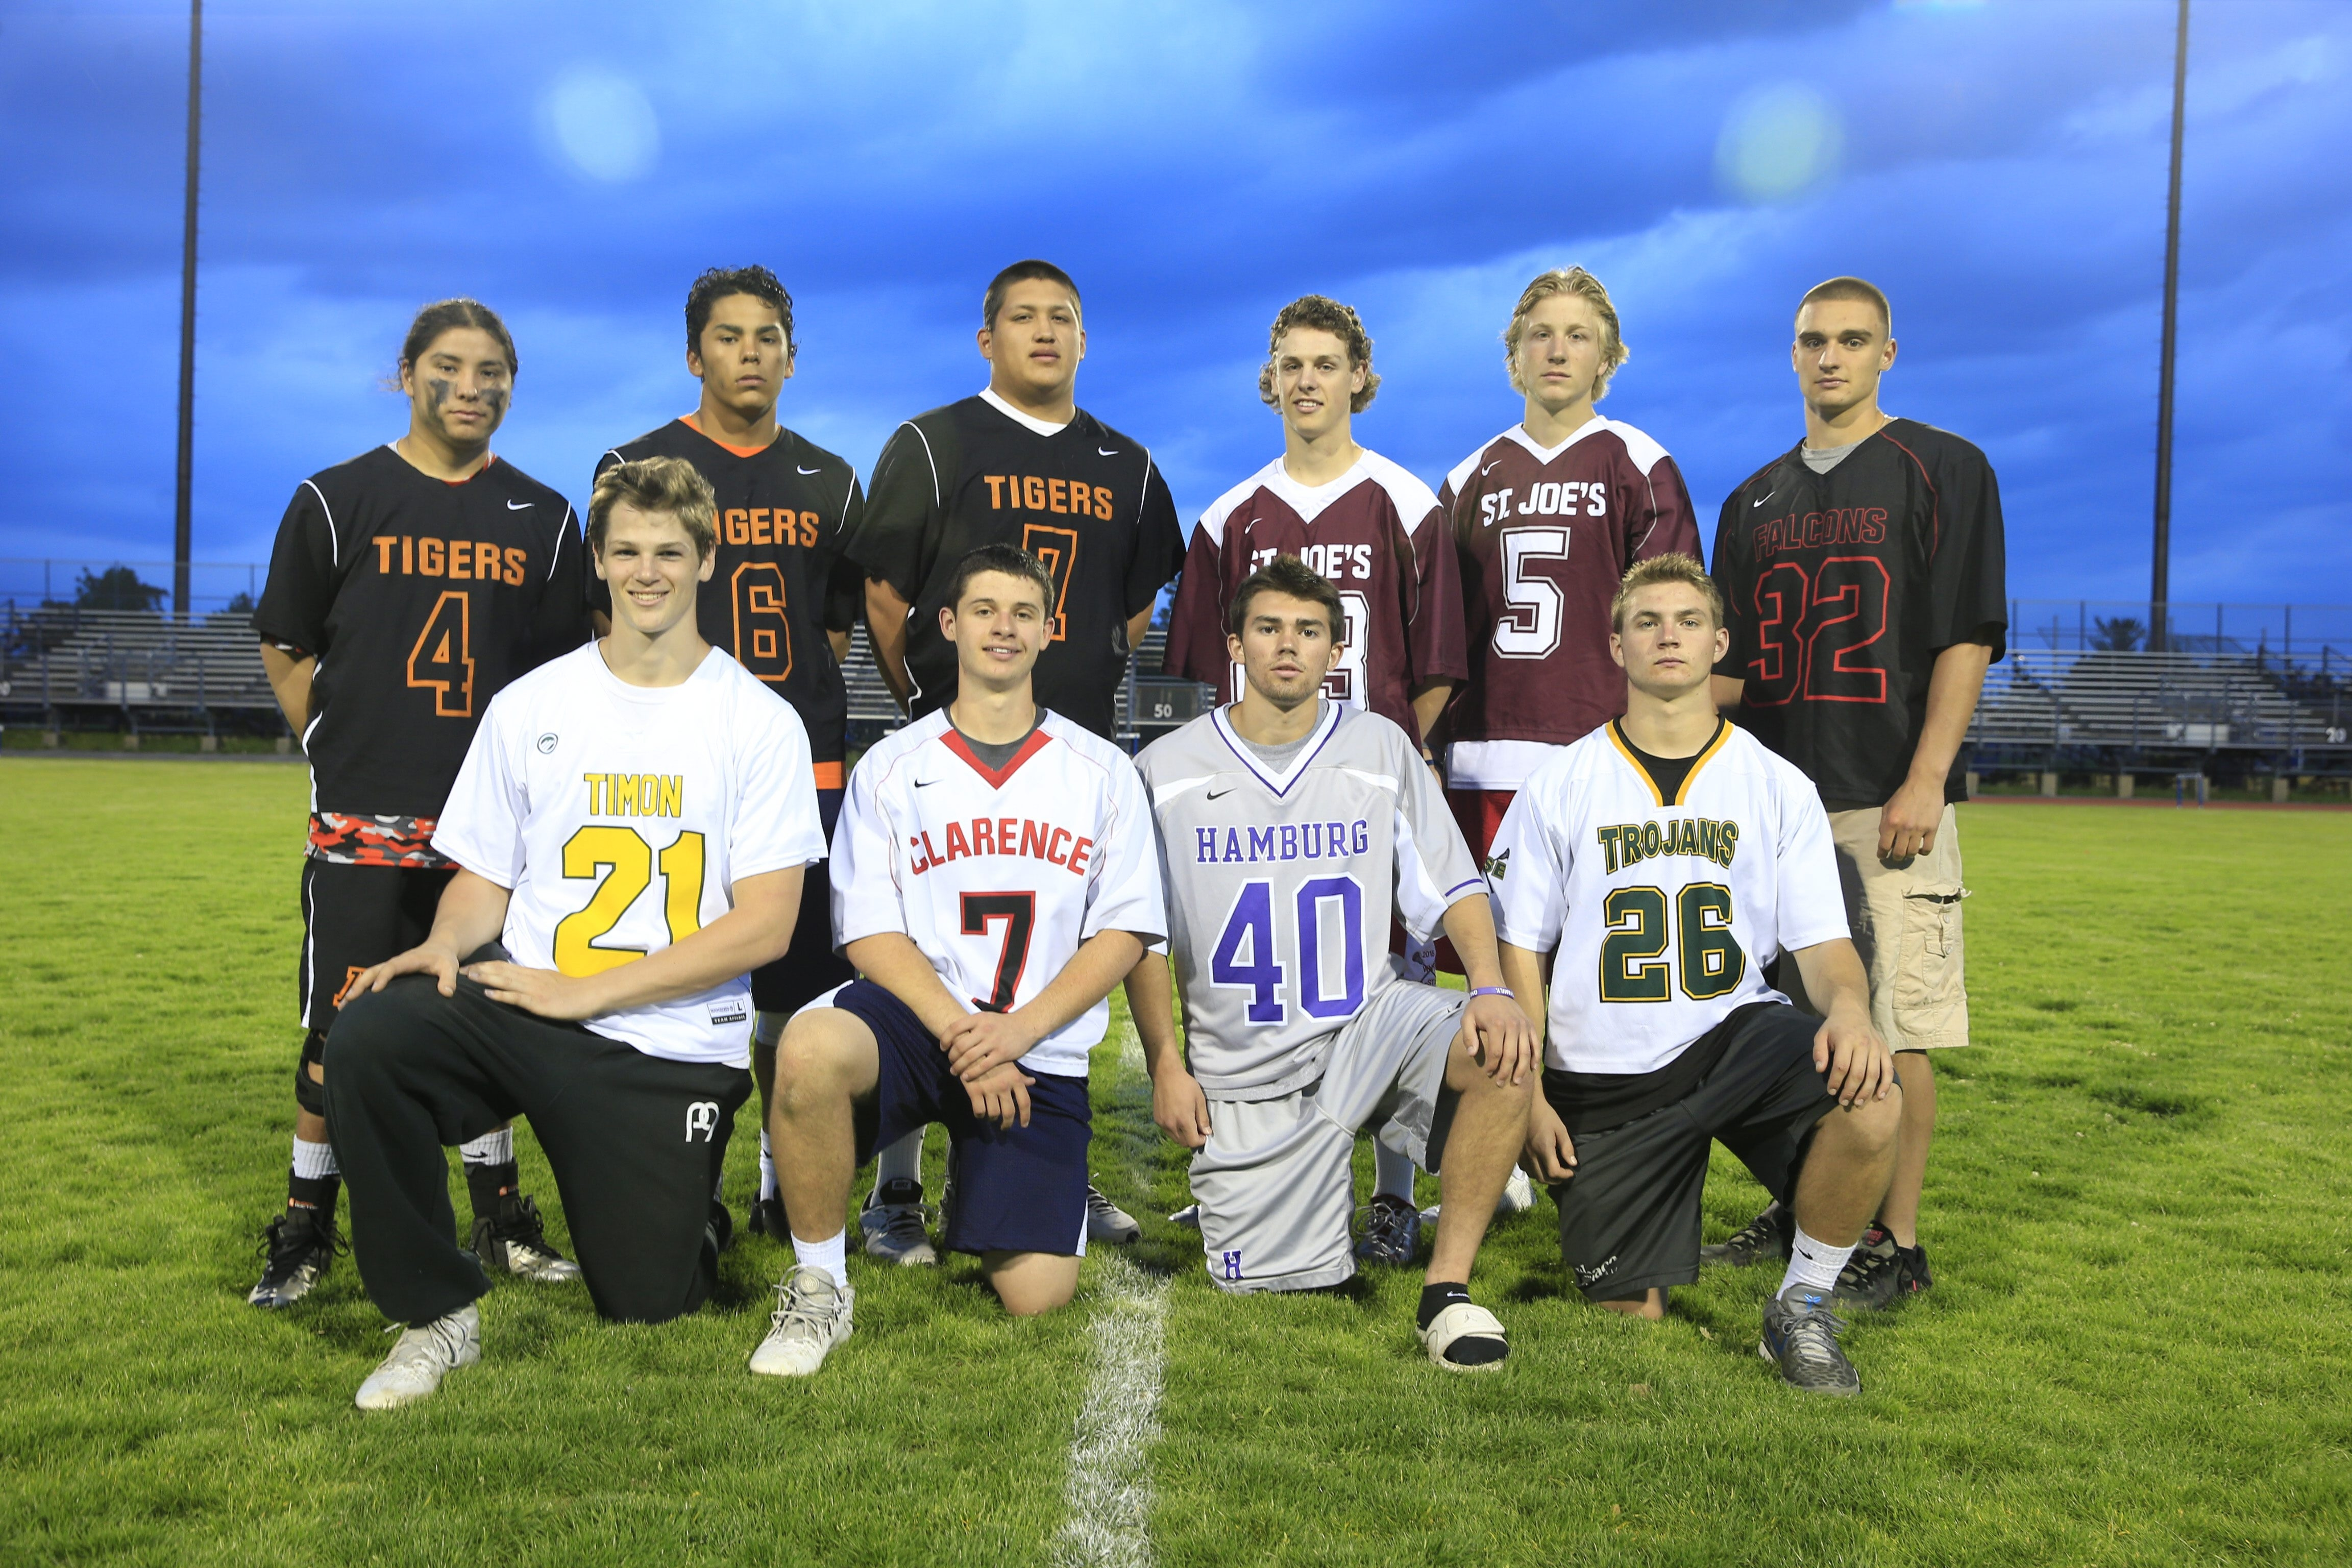 Harry Scull Jr./Buffalo NewsThe All-Western New York boys lacrosse team. Front row, from left: Tristan Dougherty (Bishop Timon-St. Jude), Josh Slowinski (Clarence), Evan Hollfelder (Hamburg) and Tyler Skretny (West Seneca East). Back row: Chaunce Hill (Akron), Larson Sundown (Akron), Gates Abrams (Akron), Myles Young (St. Joe's), Peter Masters (St. Joe's) and James Stenzel  (Niagara Wheatfield). Pictured below are Kevin McParlane (Orchard Park), Jack Seminara (Canisius), Kevin Goltz (Orchard Park) and John Ennis (Nichols).